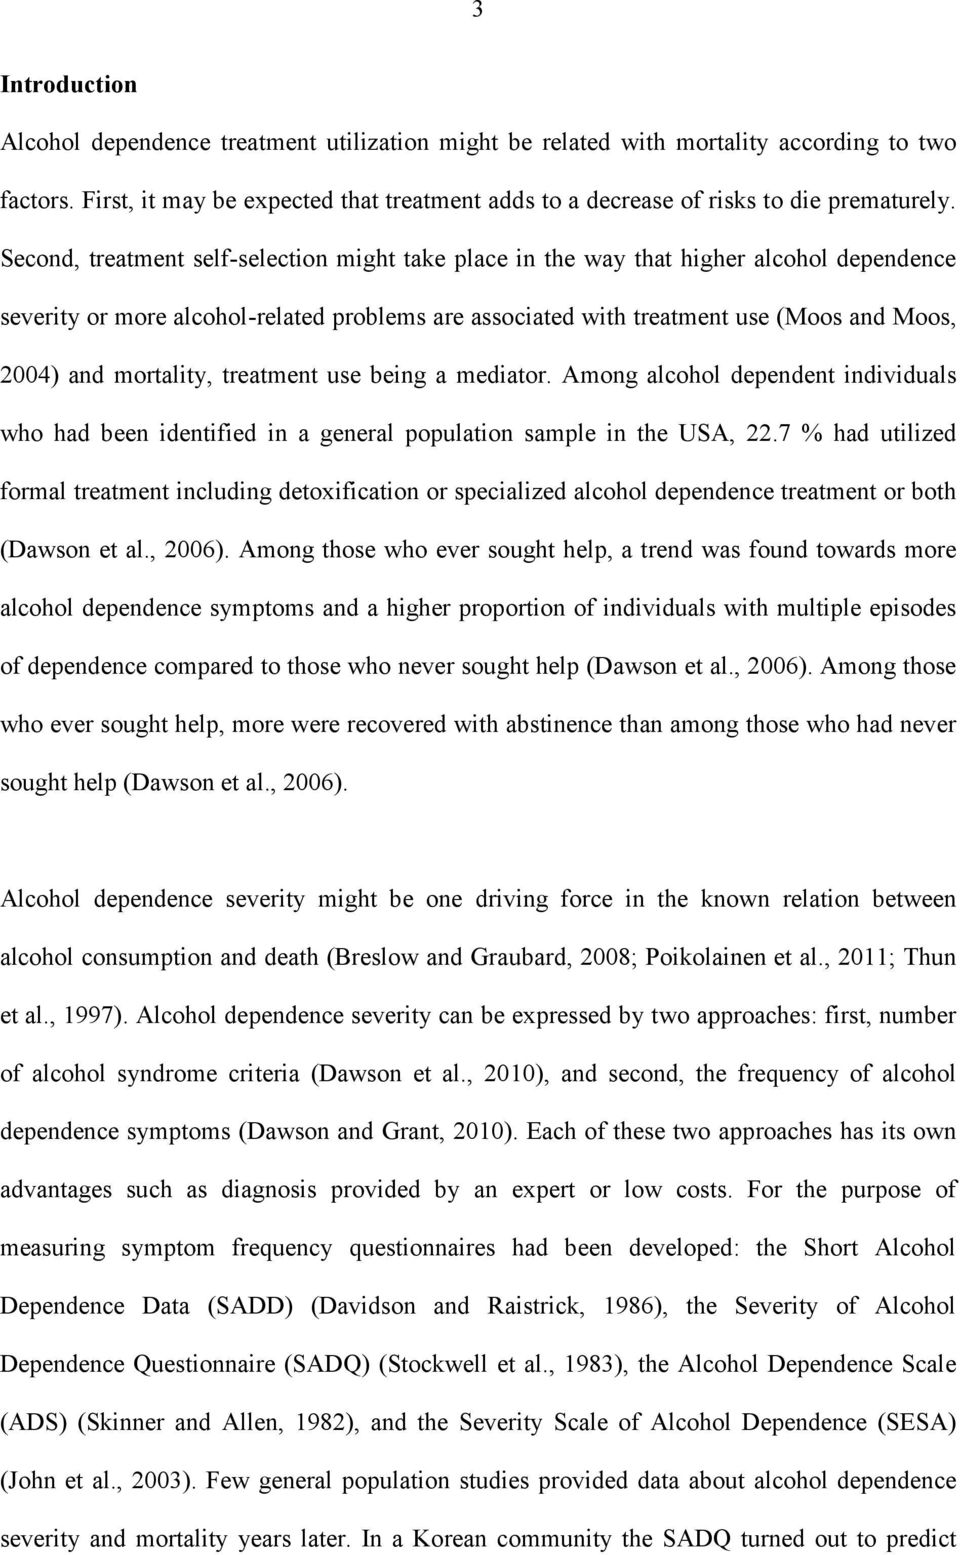 Second, treatment self-selection might take place in the way that higher alcohol dependence severity or more alcohol-related problems are associated with treatment use (Moos and Moos, 2004) and